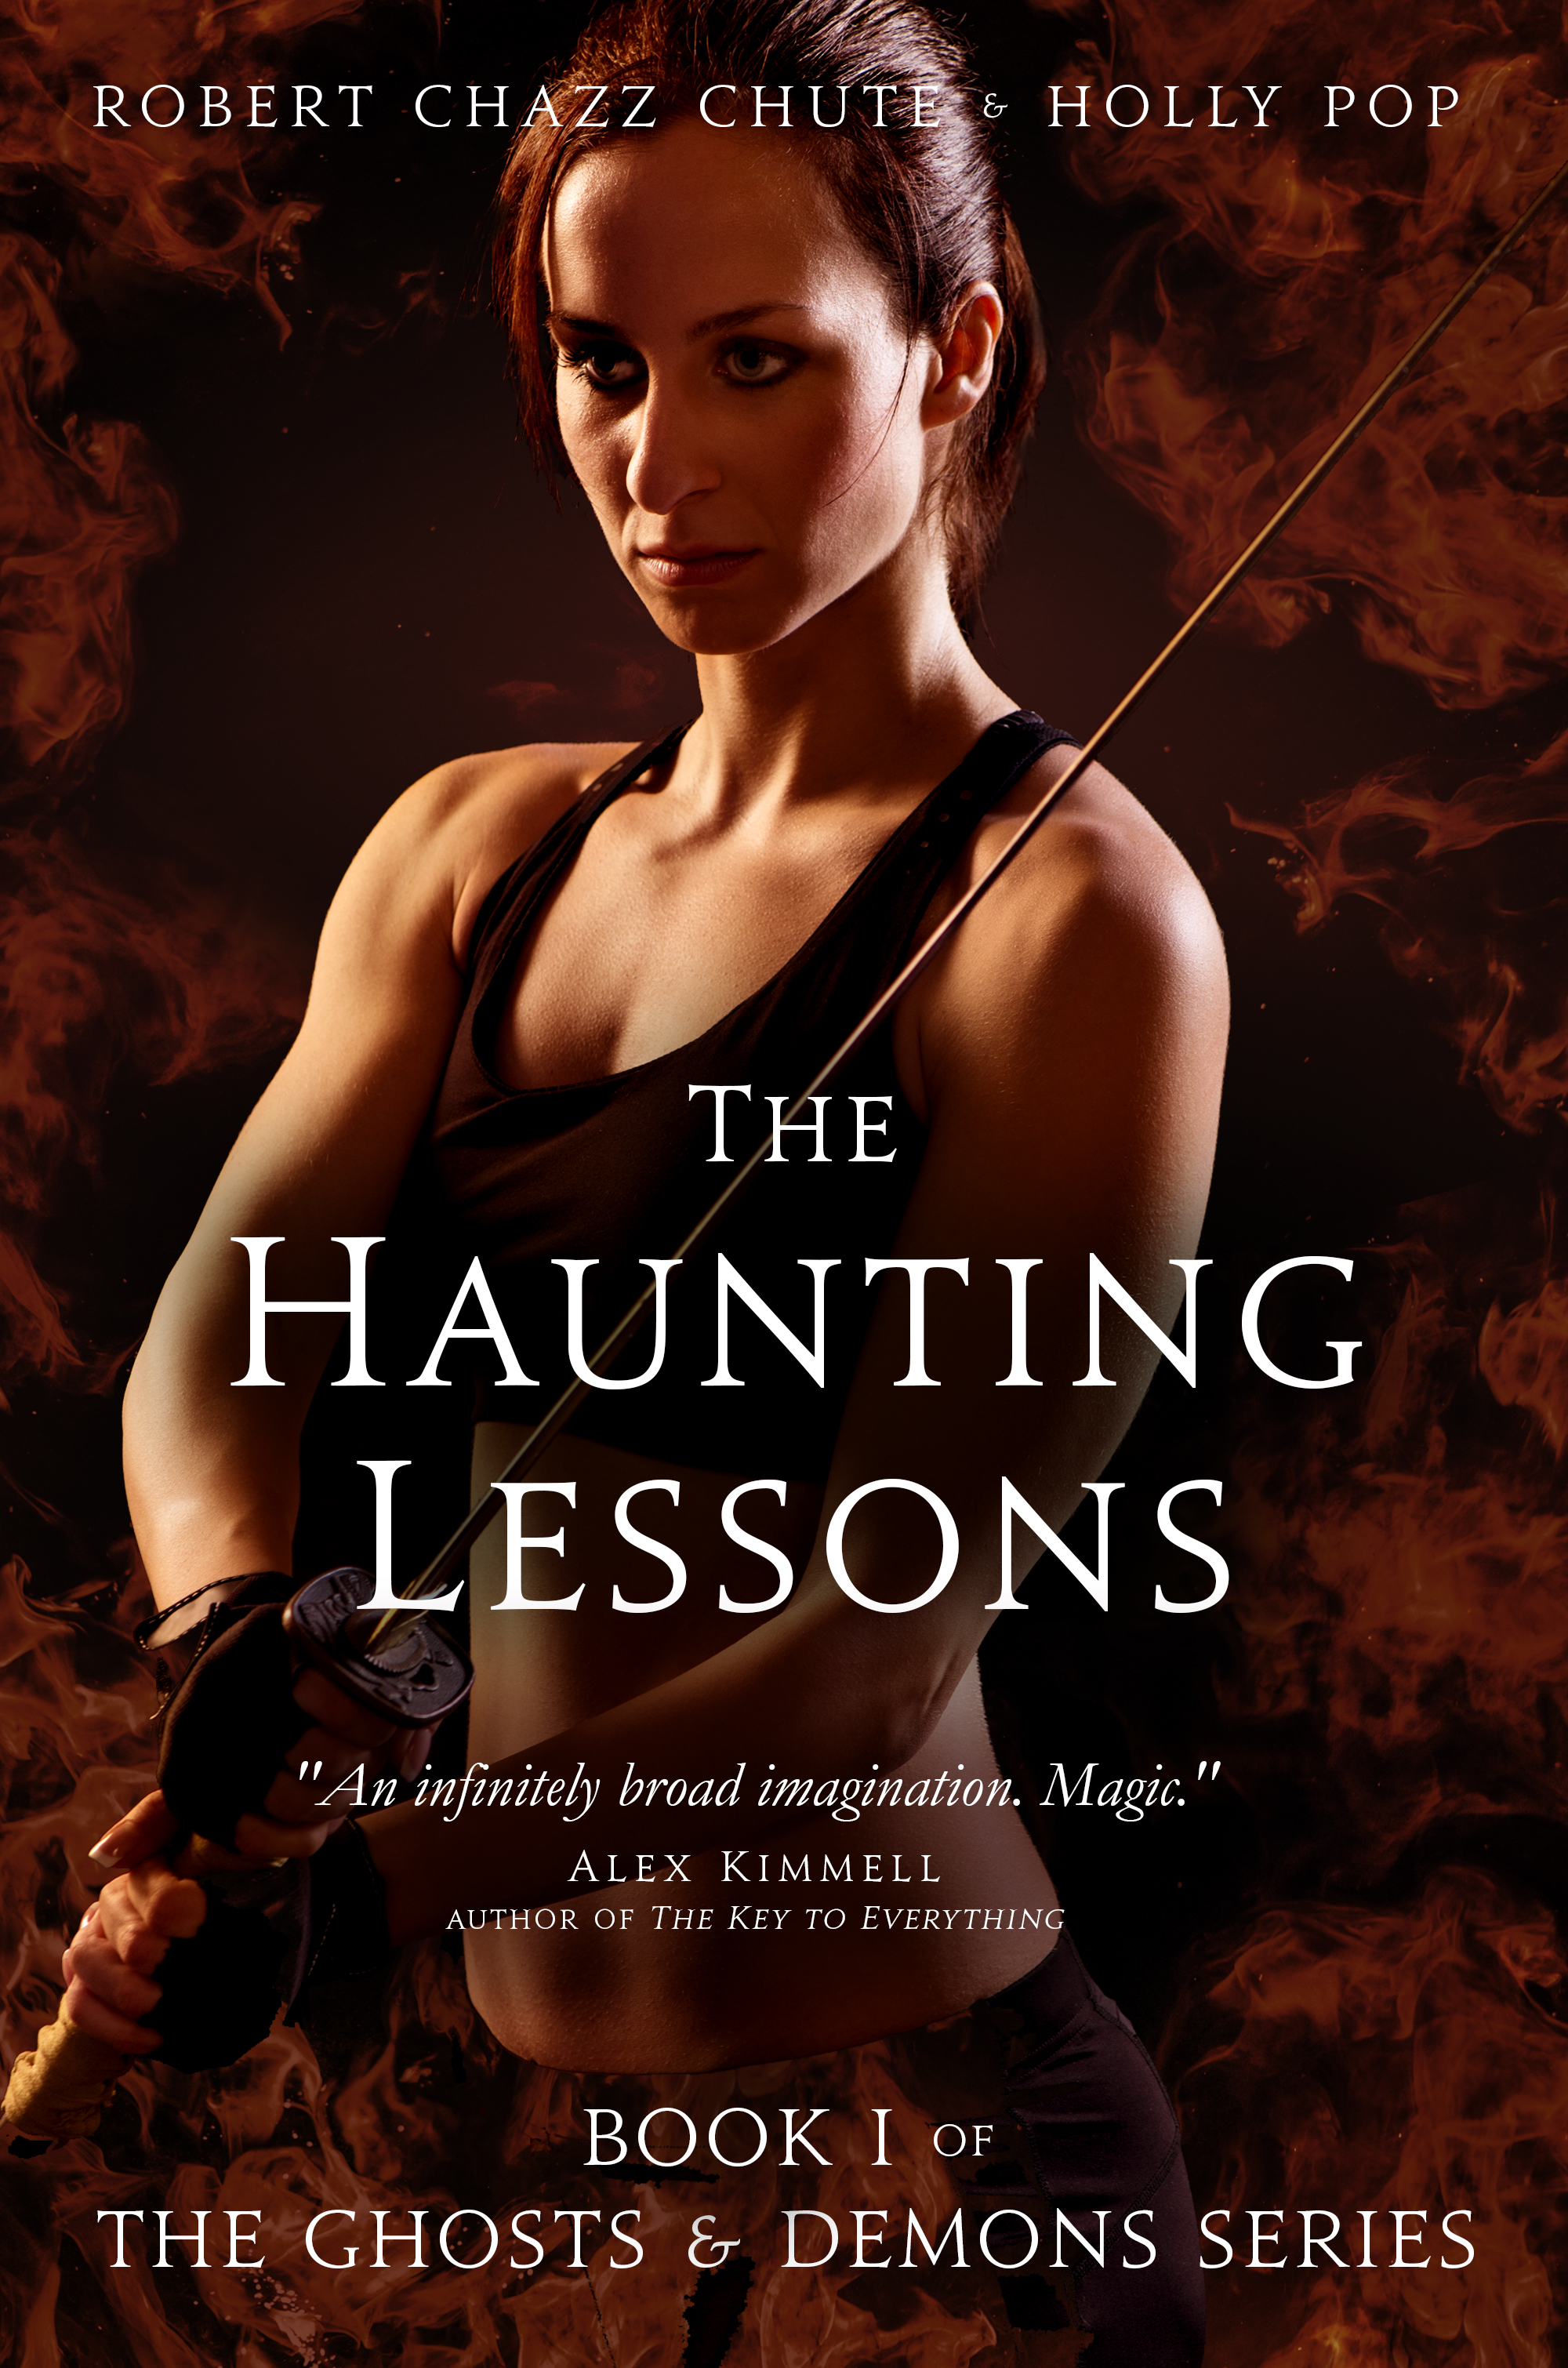 The Haunting Lessons